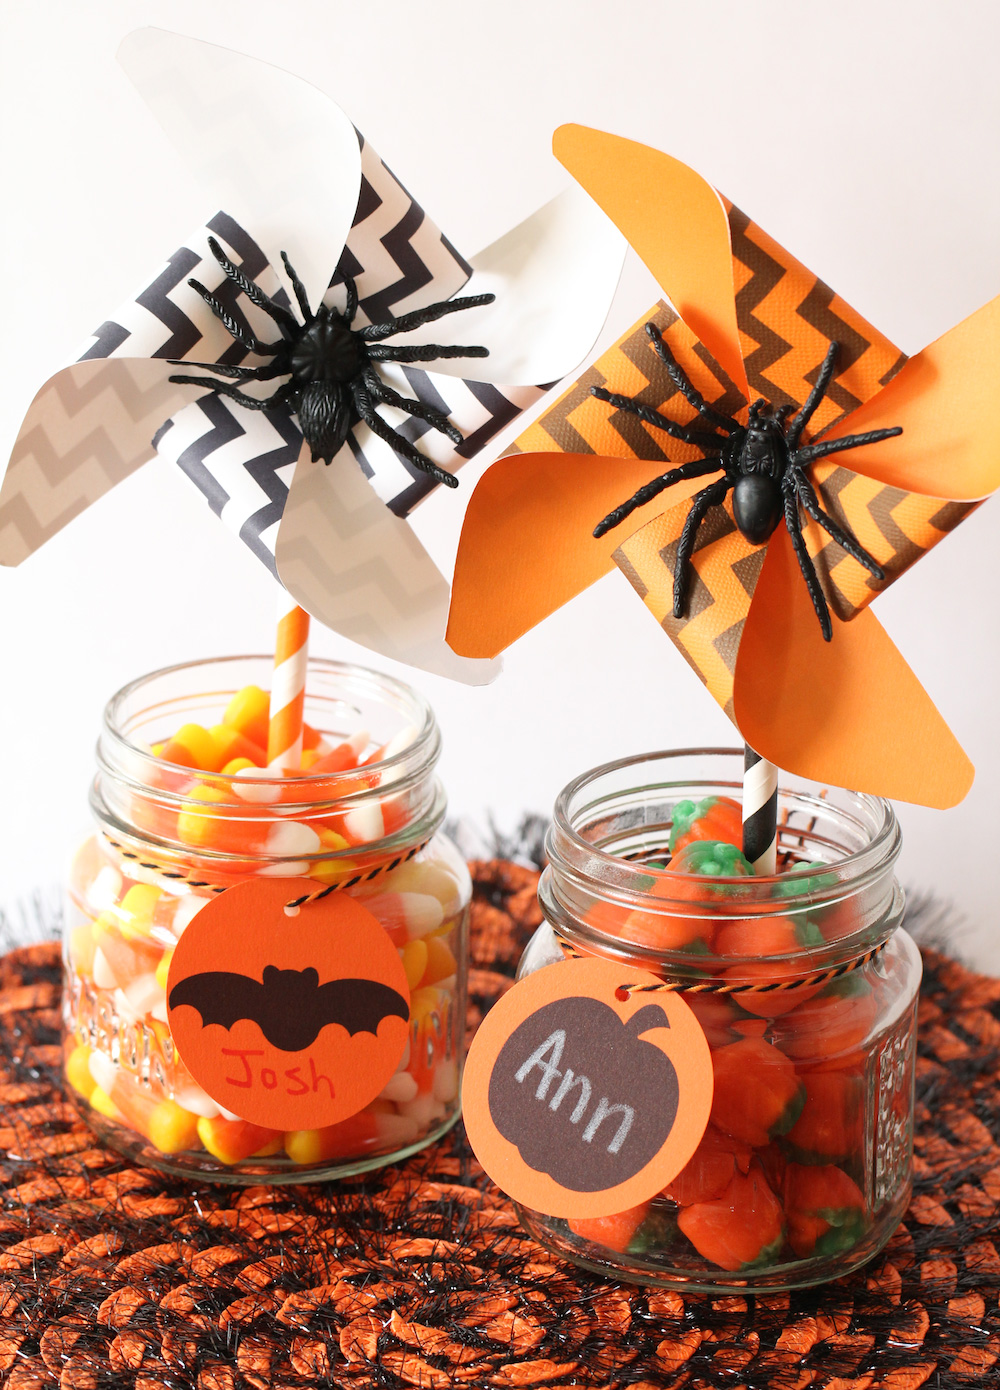 Halloween Pinwheels complete with spiders / these printable pinwheels are the perfect party decoration for candy jars and more. Add a spider for a little extra scare / click to see the DIY and download links for the pinwheels on Giggle Hearts www.gigglehearts.com #fallcraftsforkids #fallcraft #halloweencraftsforkids #halloweencrafts #pinwheelsparty